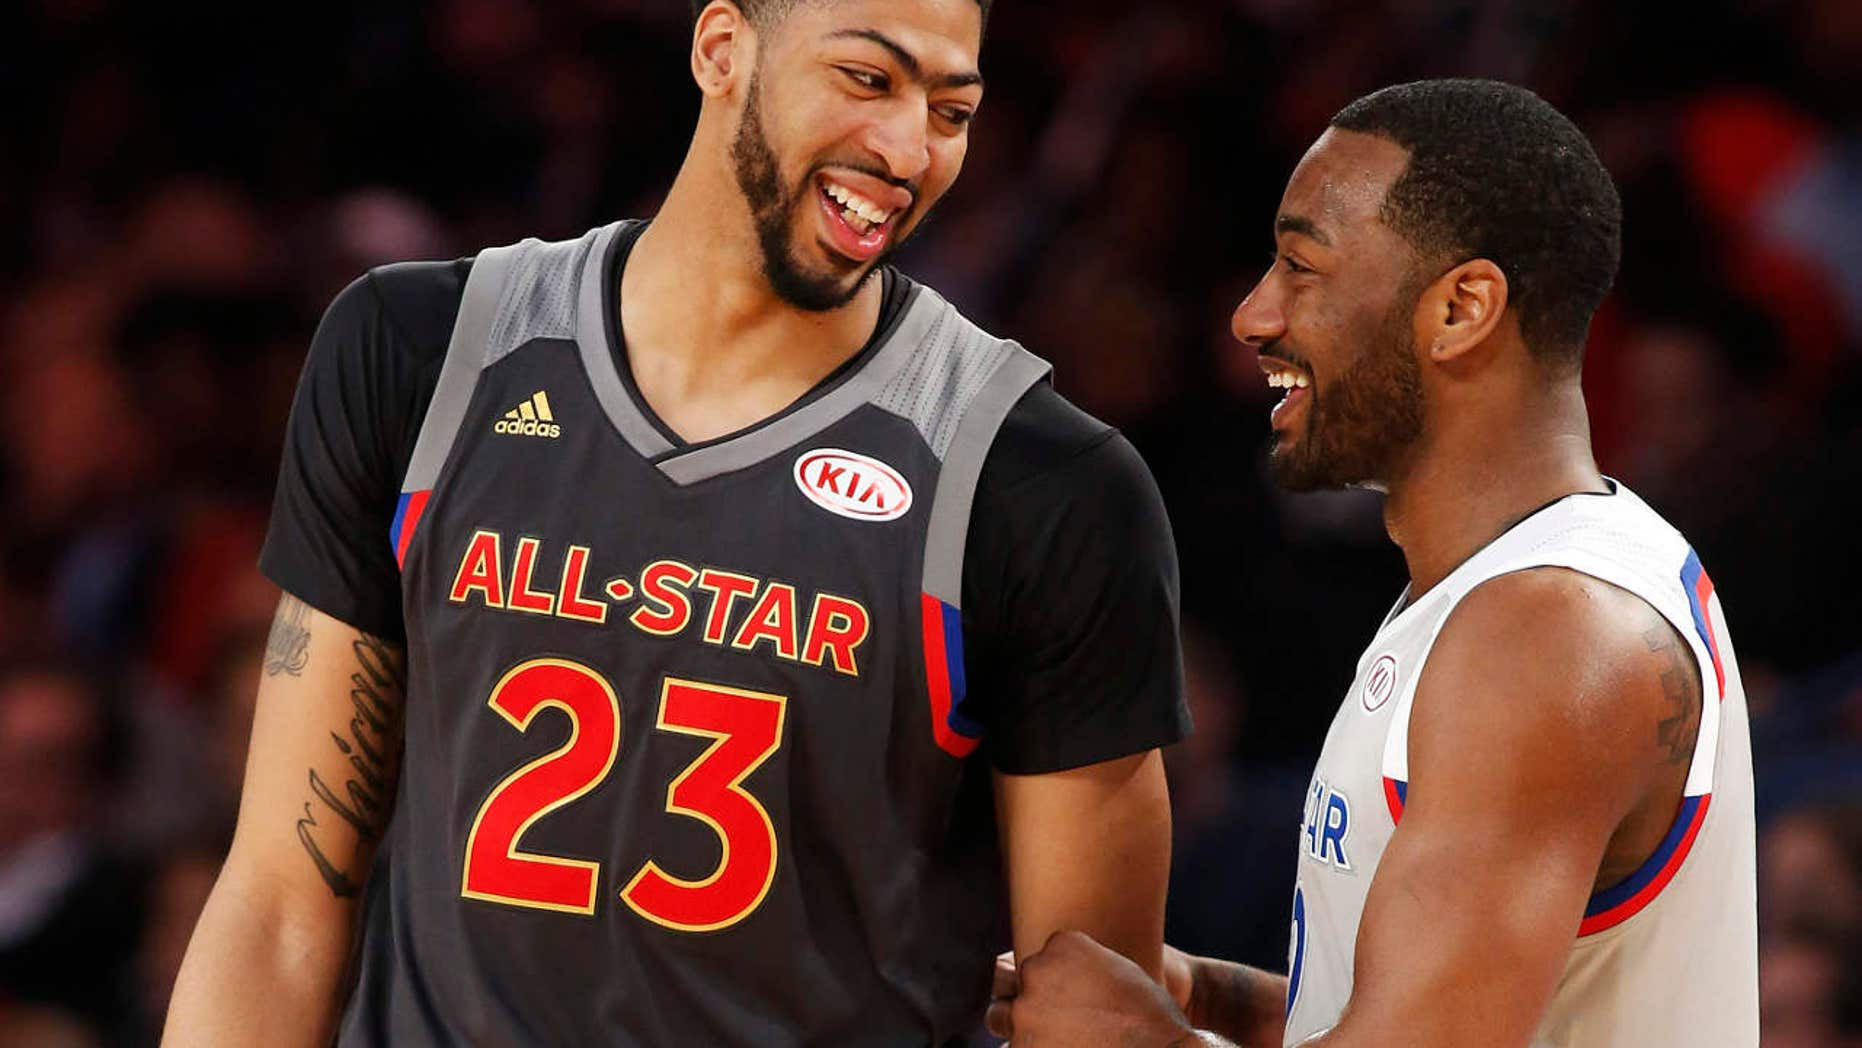 Western Conference forward Anthony Davis of the New Orleans Pelicans (23) laughs with Eastern Conference guard John Wall of the Washington Wizards (2) in the second half of the NBA All-Star basketball game in New Orleans, Sunday, Feb. 19, 2017.